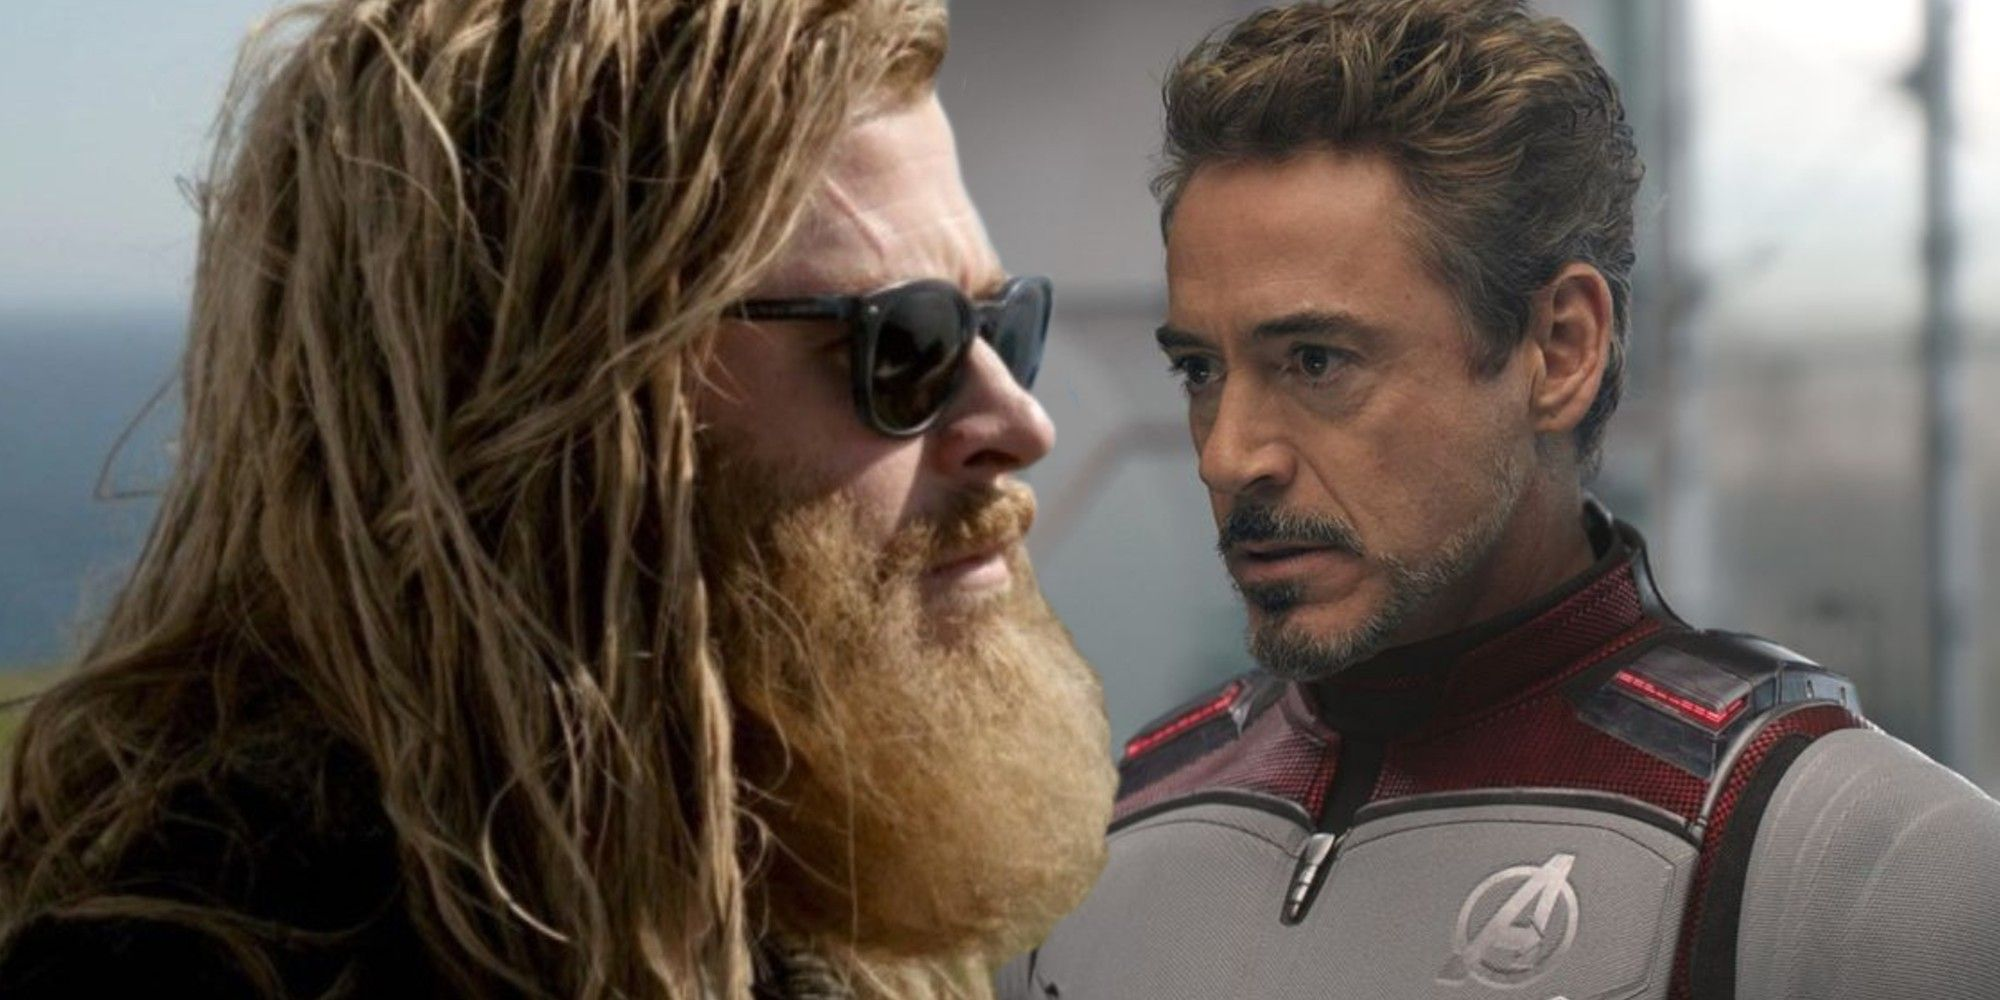 Endgame: Tony Stark's Fat Thor Reaction Confirms It Was Never Just A Joke